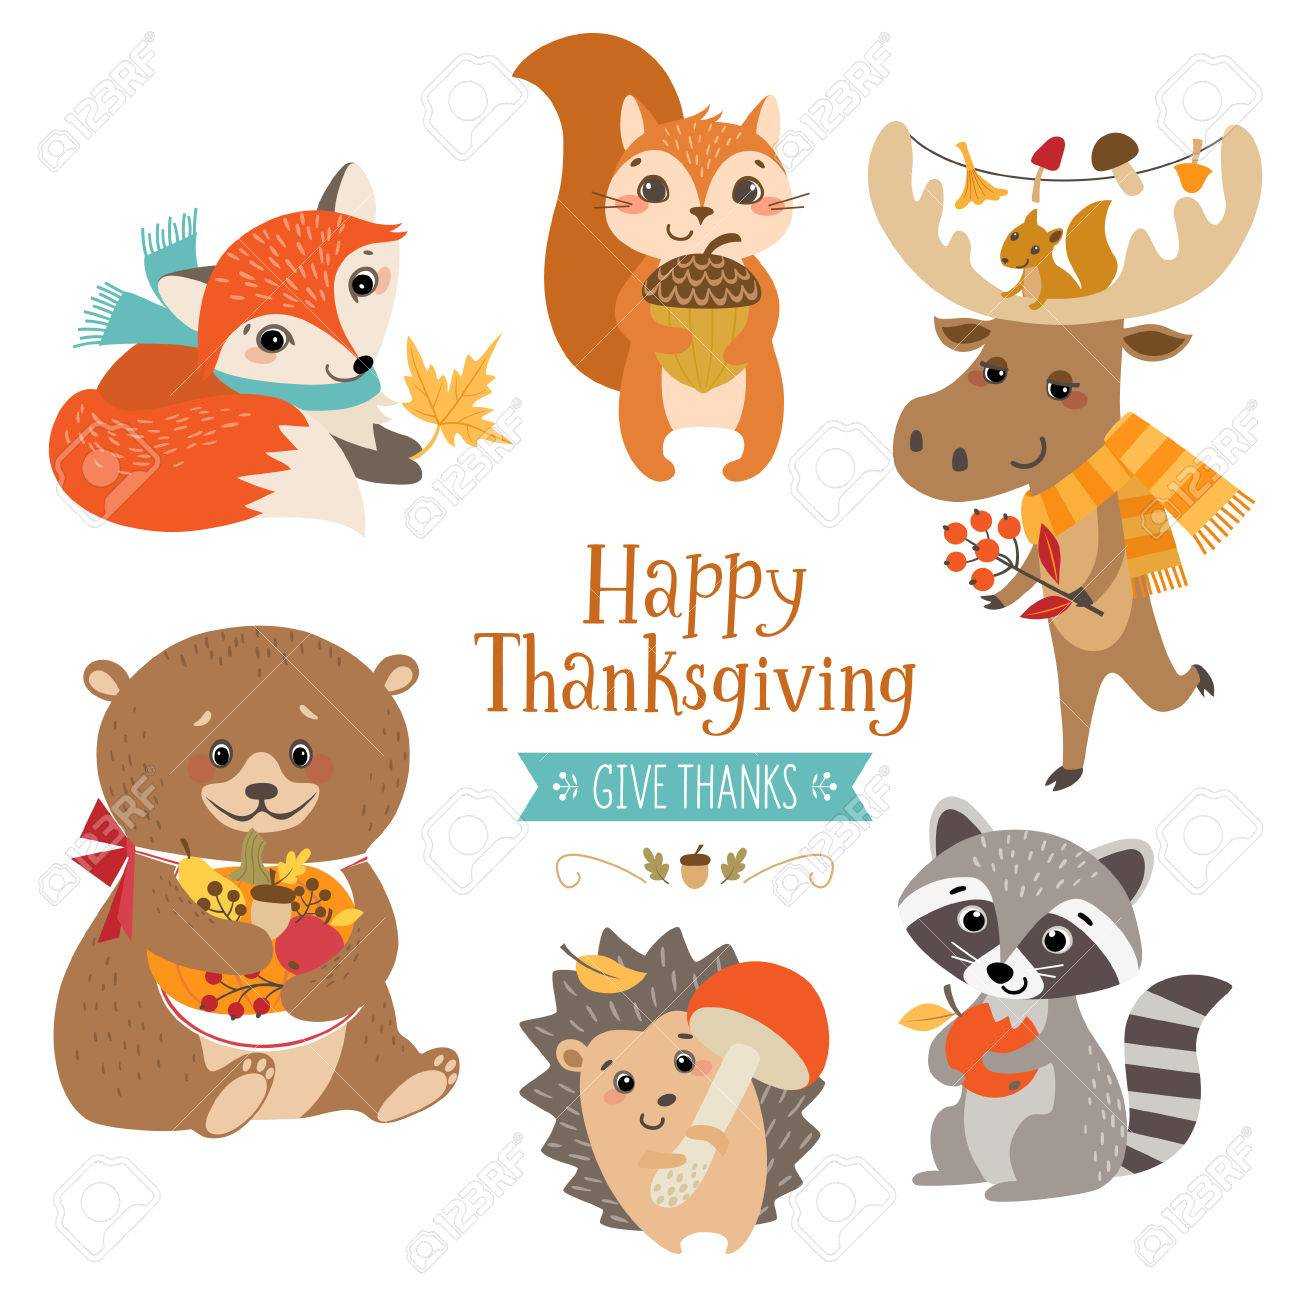 Cute forest animals for Thanksgiving design. - 69238242